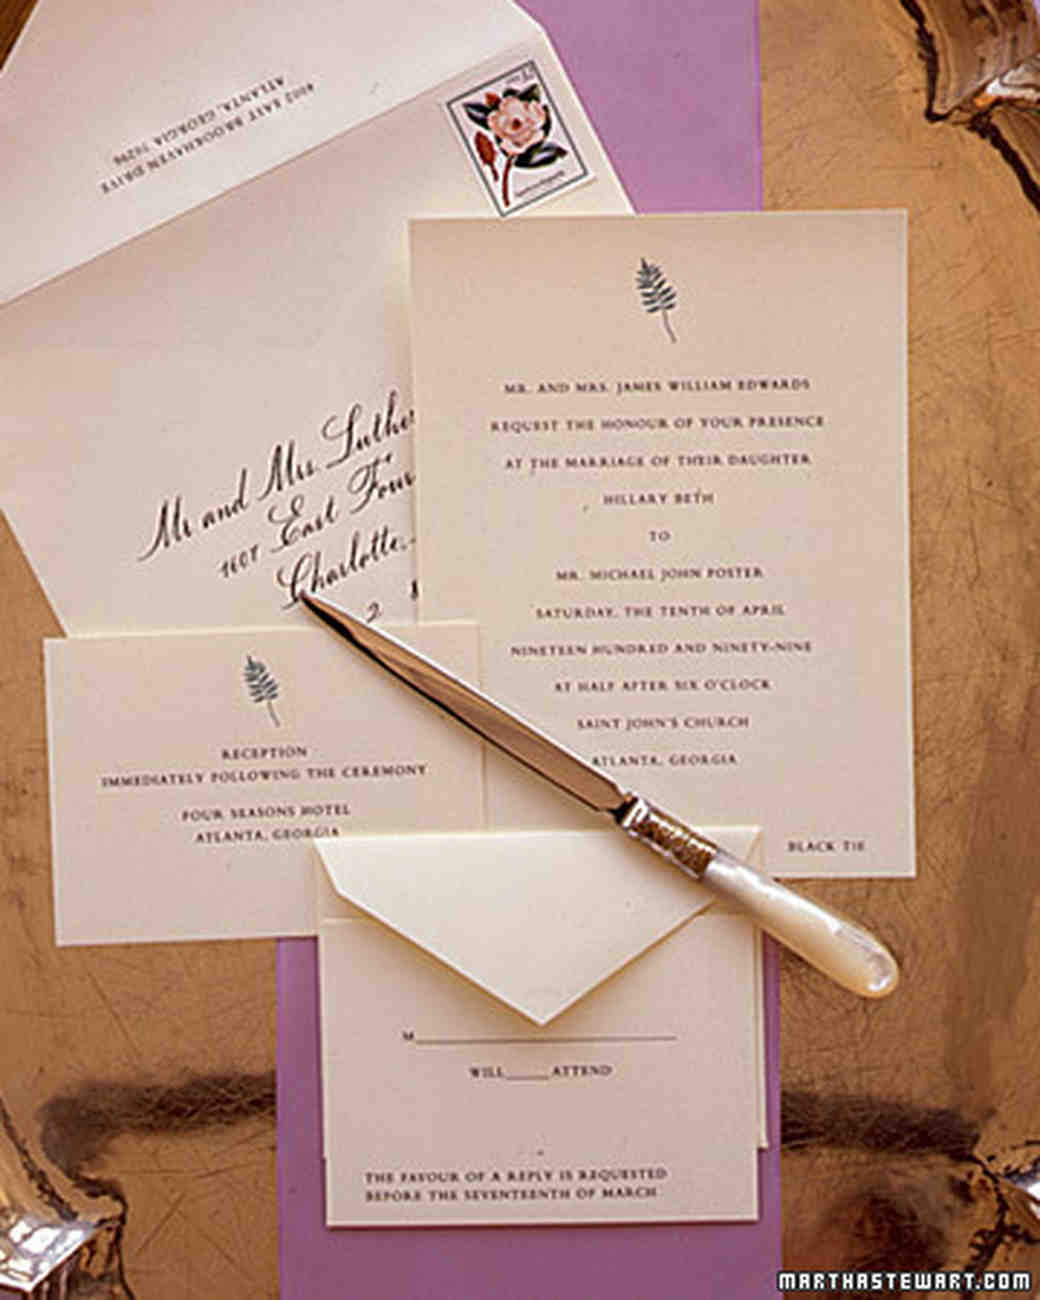 Wedding Gift Etiquette On Invitation : Information On Wedding Invitations the etiquette of wedding invitation ...